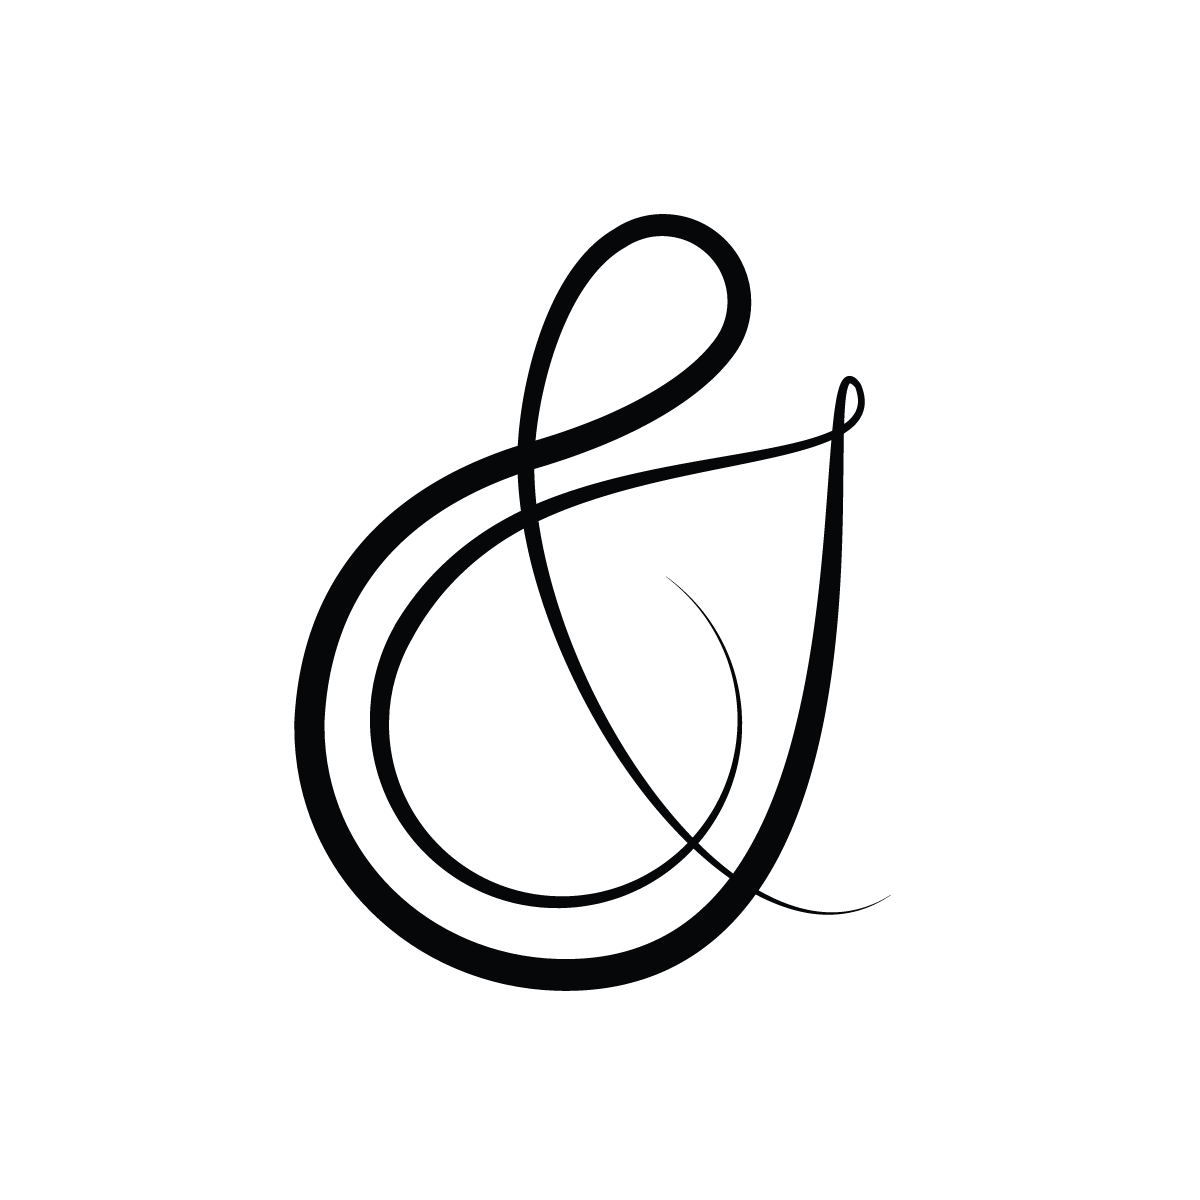 Ampersand_Grid_02_old-16